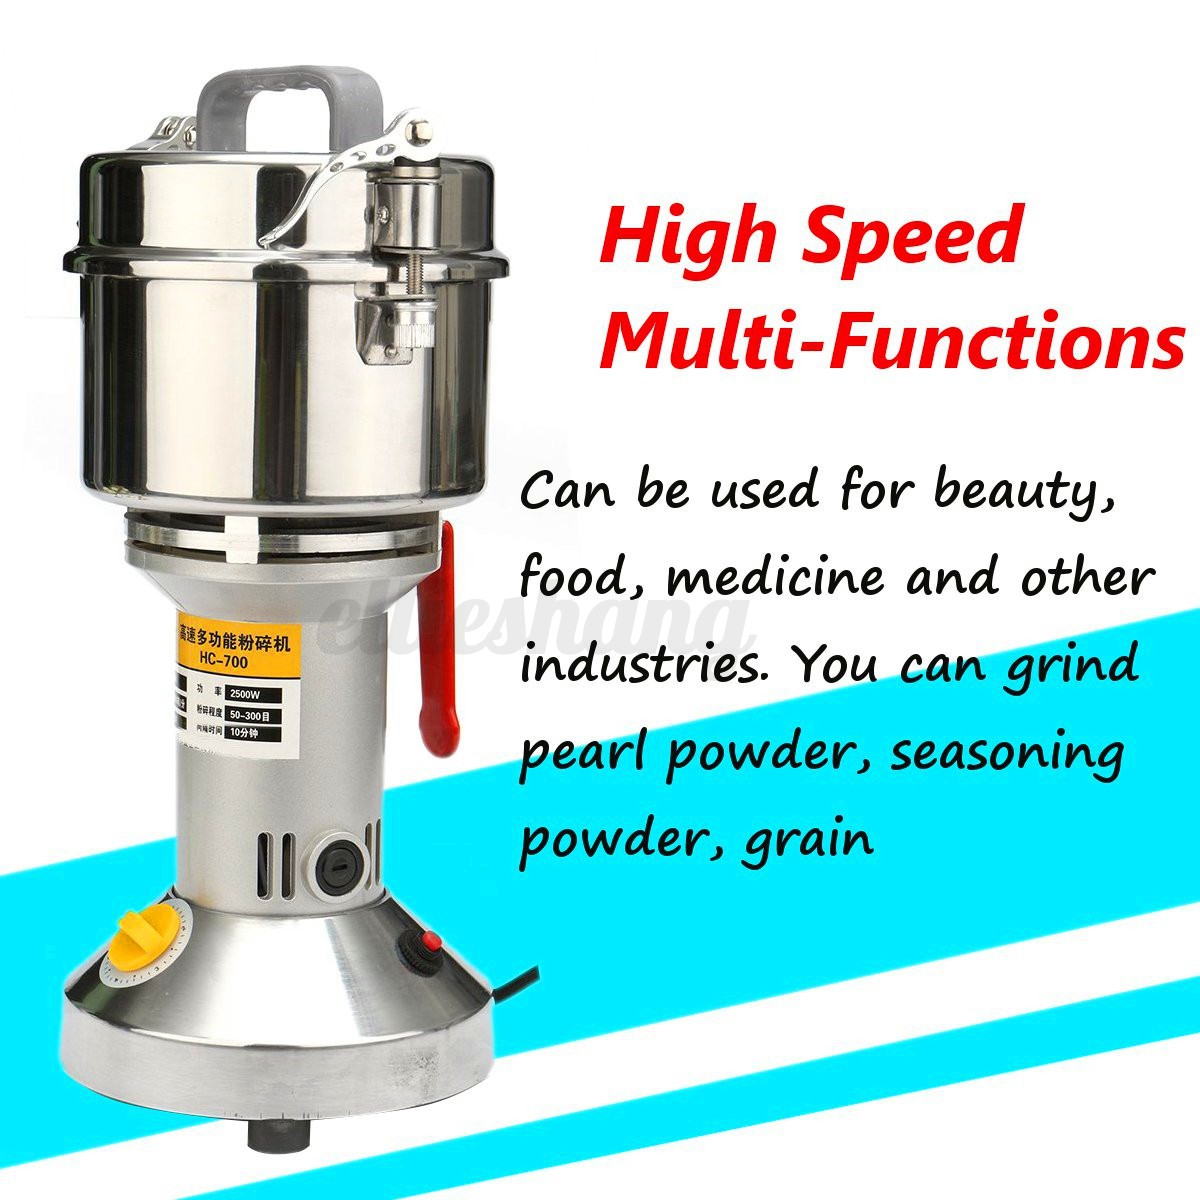 powder grinder equipment Powder grinding equipment the micro jet is our horizontal mill, the roto jet is our fine grinding mill for abrasives the jet o mizer is versatile for most production lines.